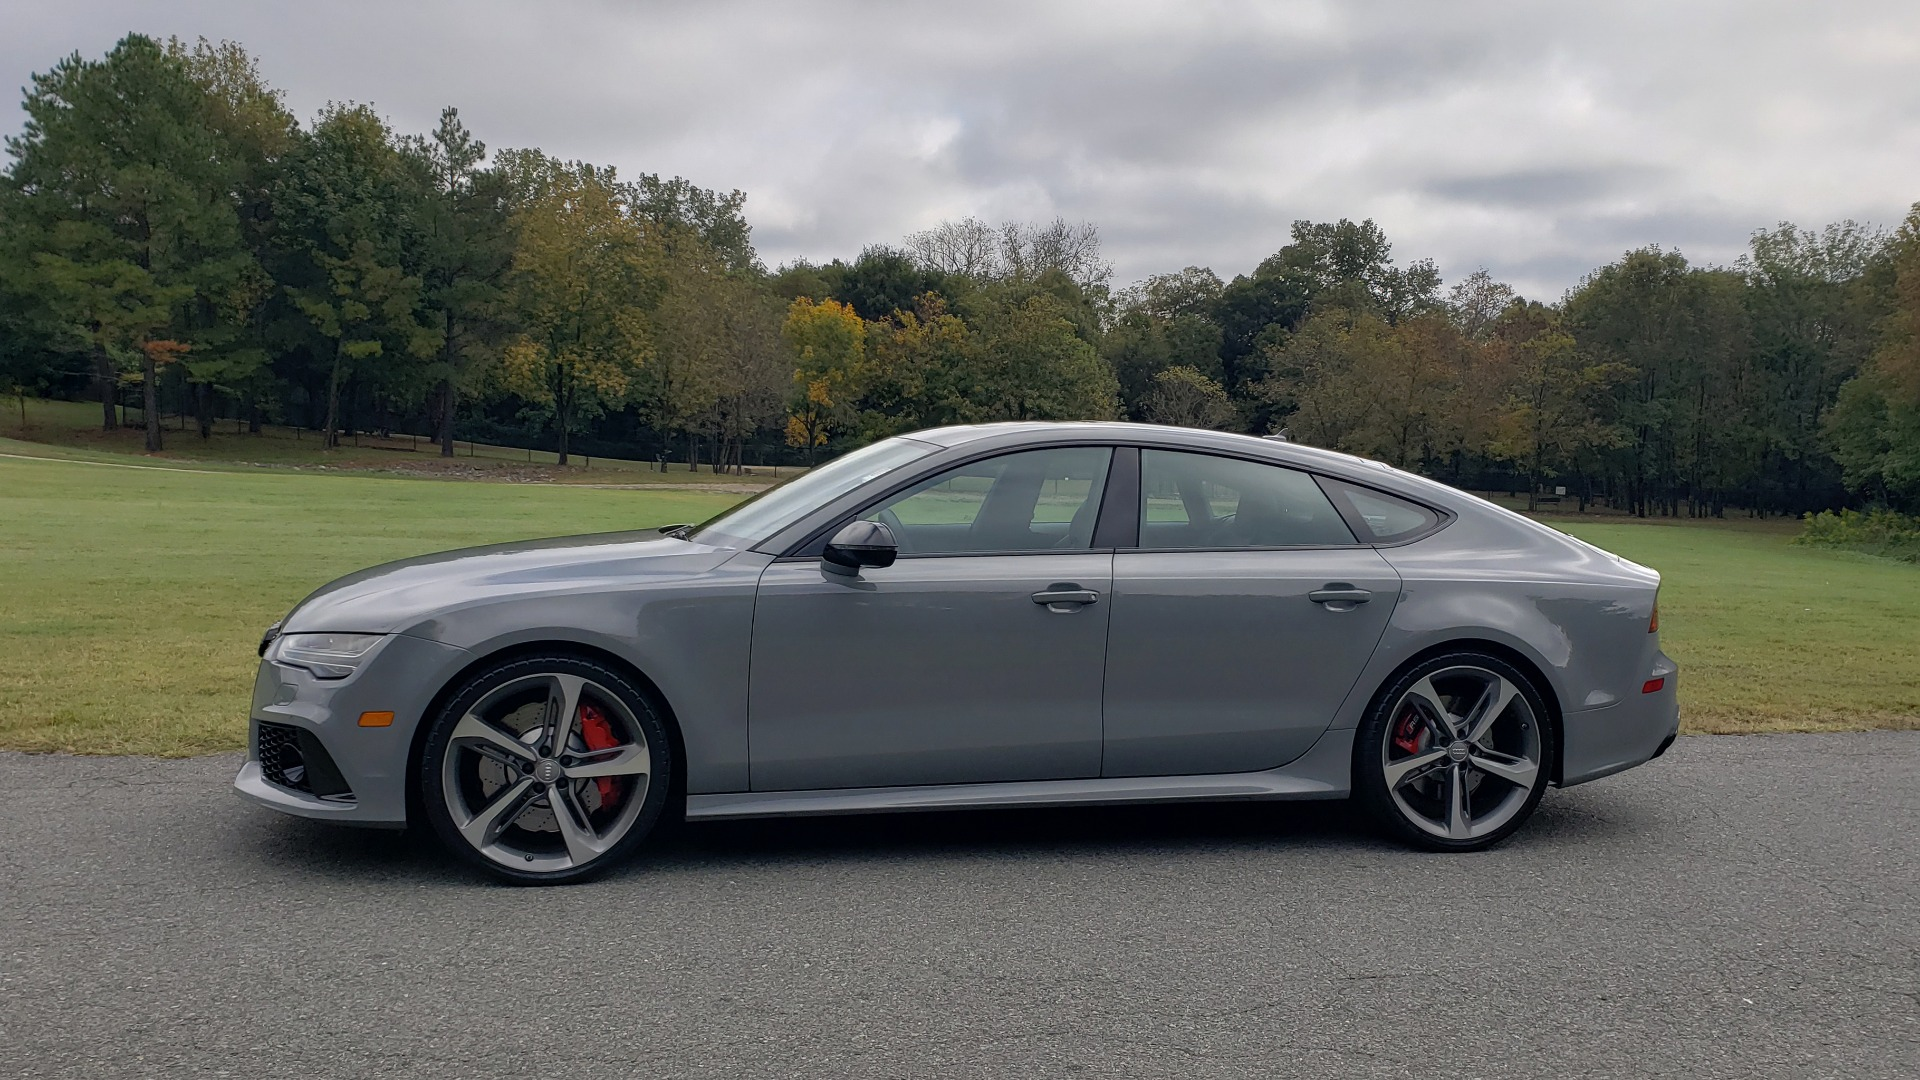 Used 2018 Audi RS 7 for sale Sold at Formula One Imports in Charlotte NC 28227 7